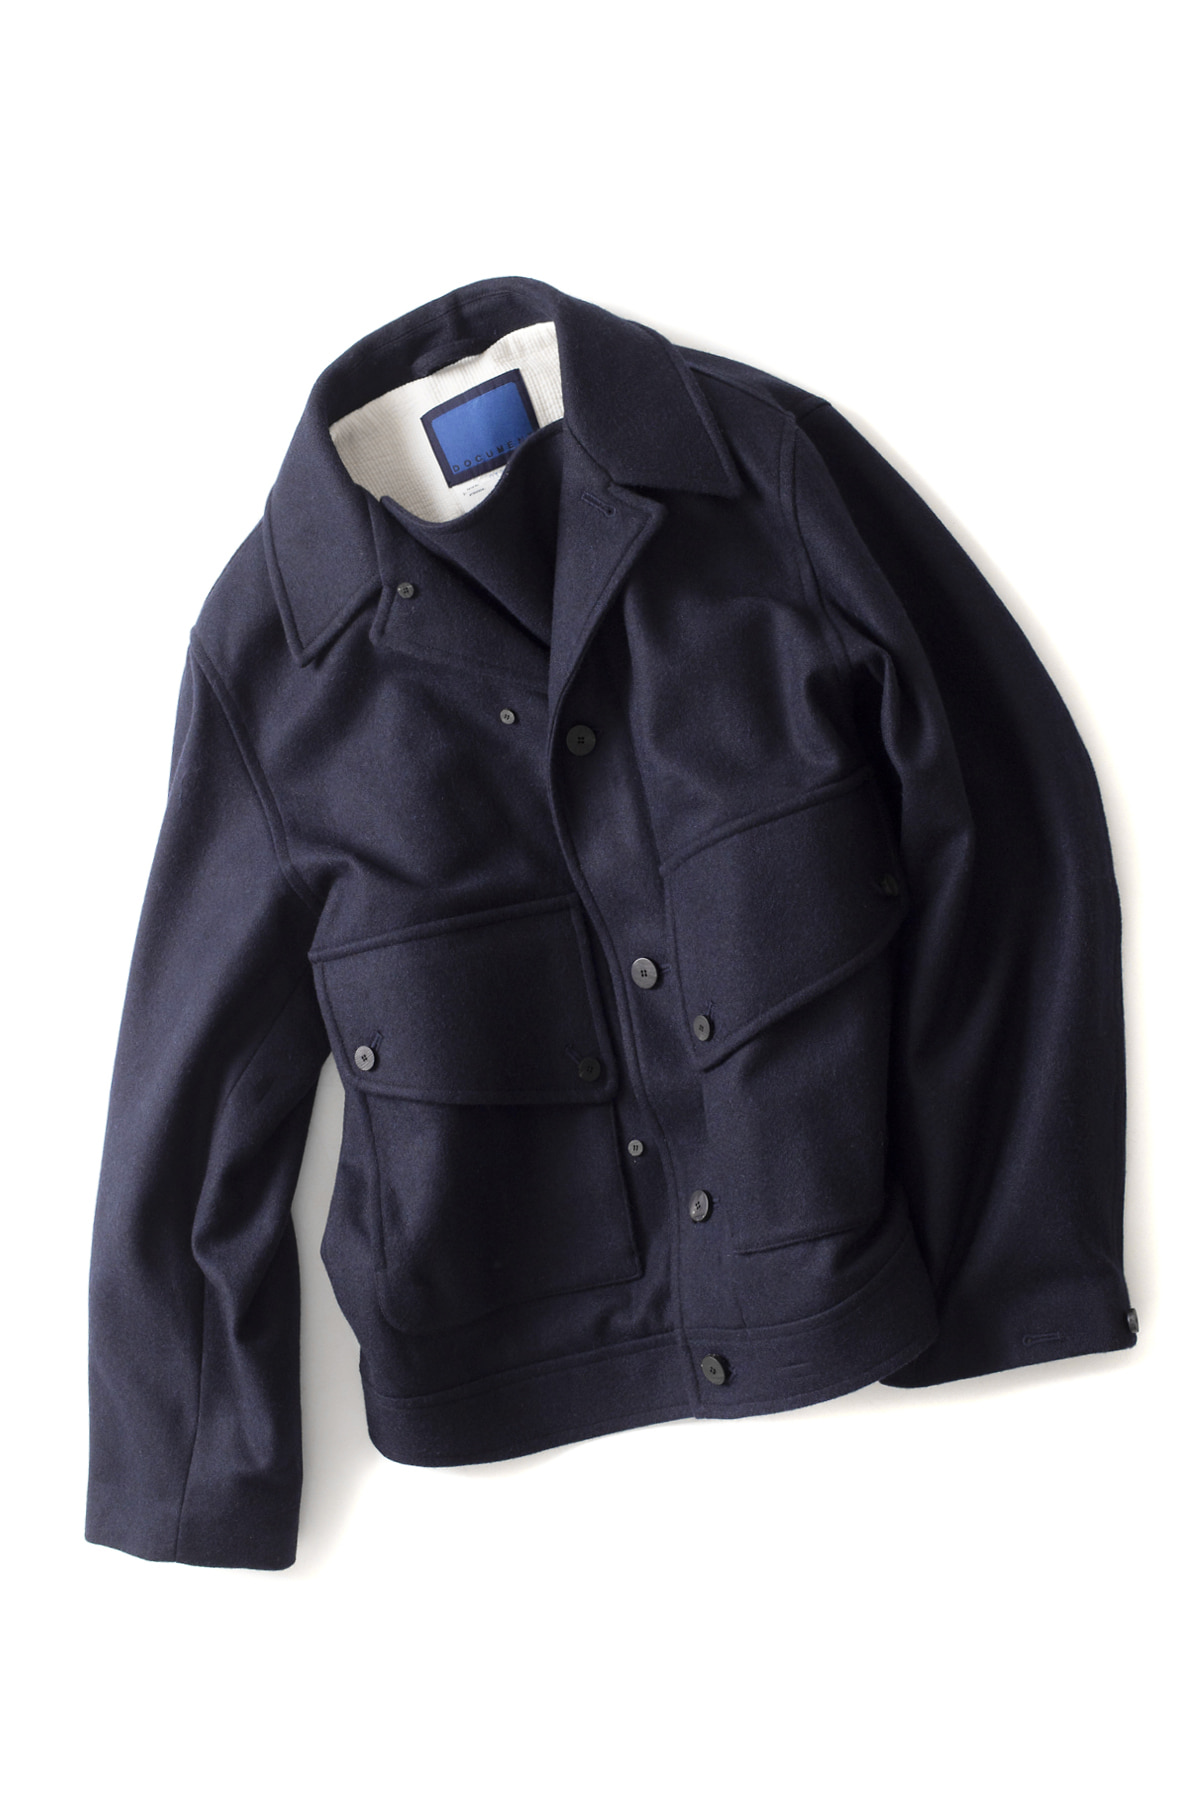 Document : The Document Big Jacket (Navy)